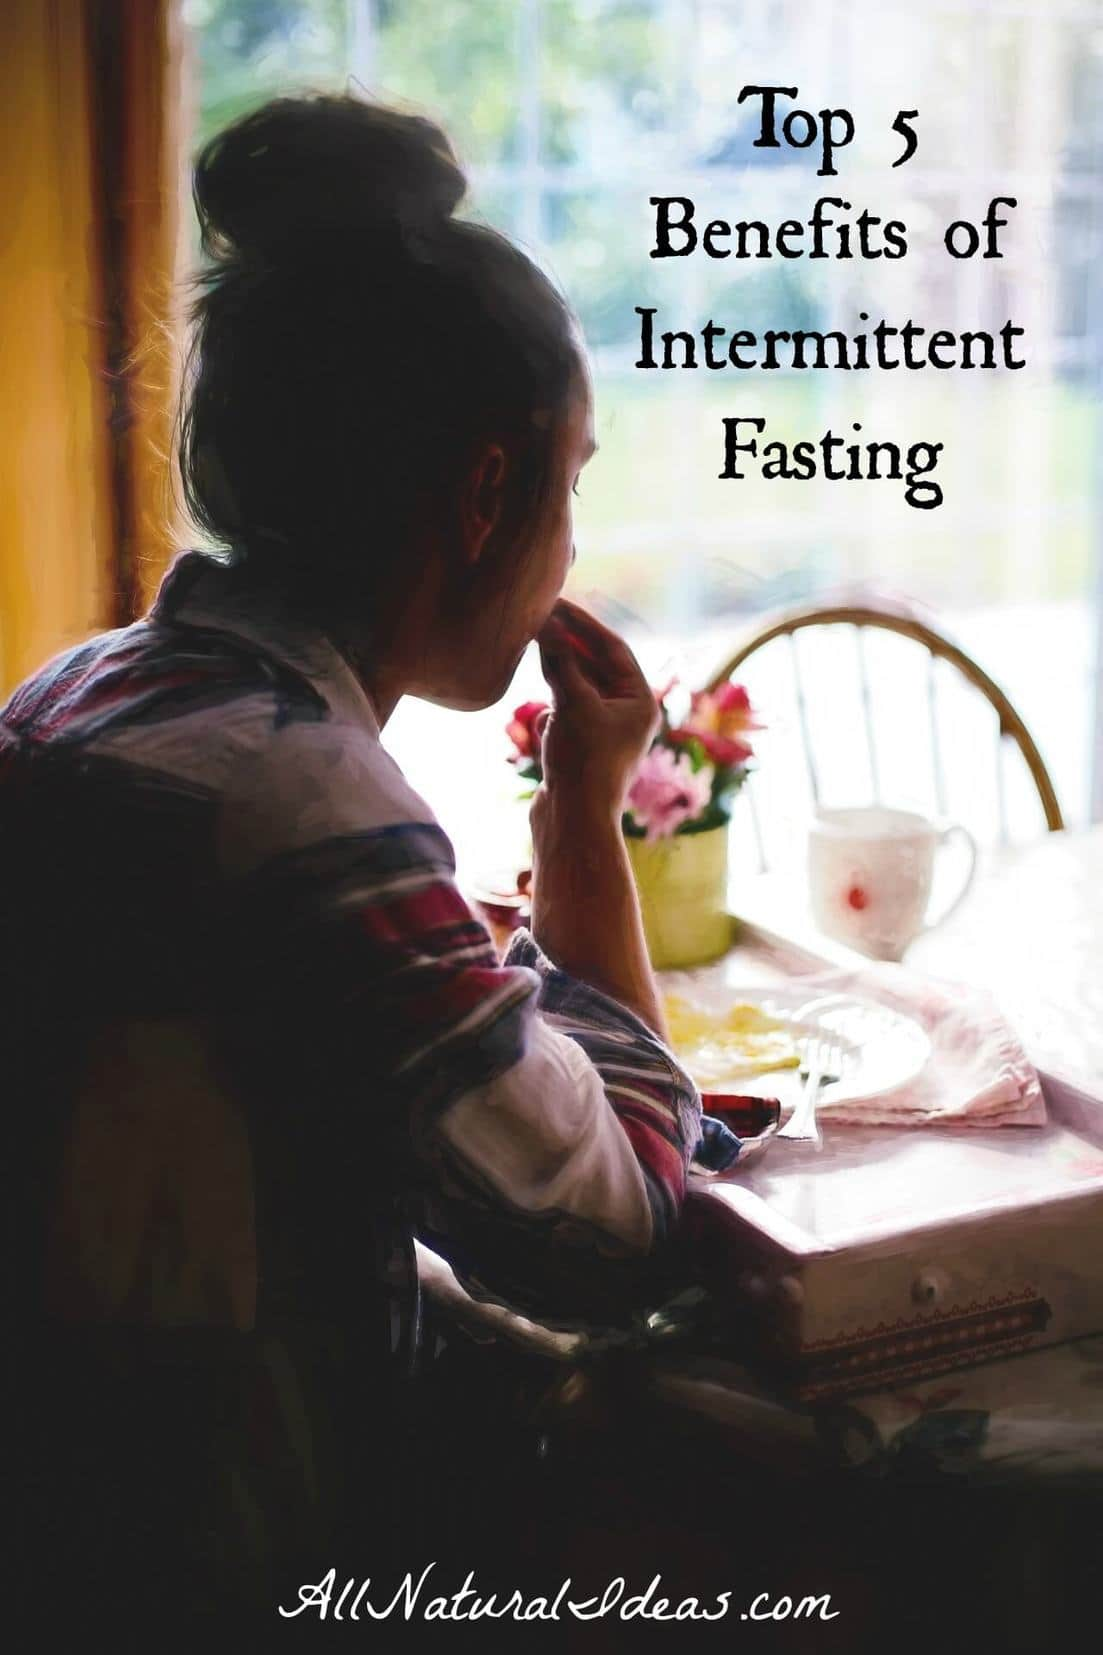 Want to lose weight and boost the functionality of your cells? Check out the top intermittent fasting benefits to boost your health!